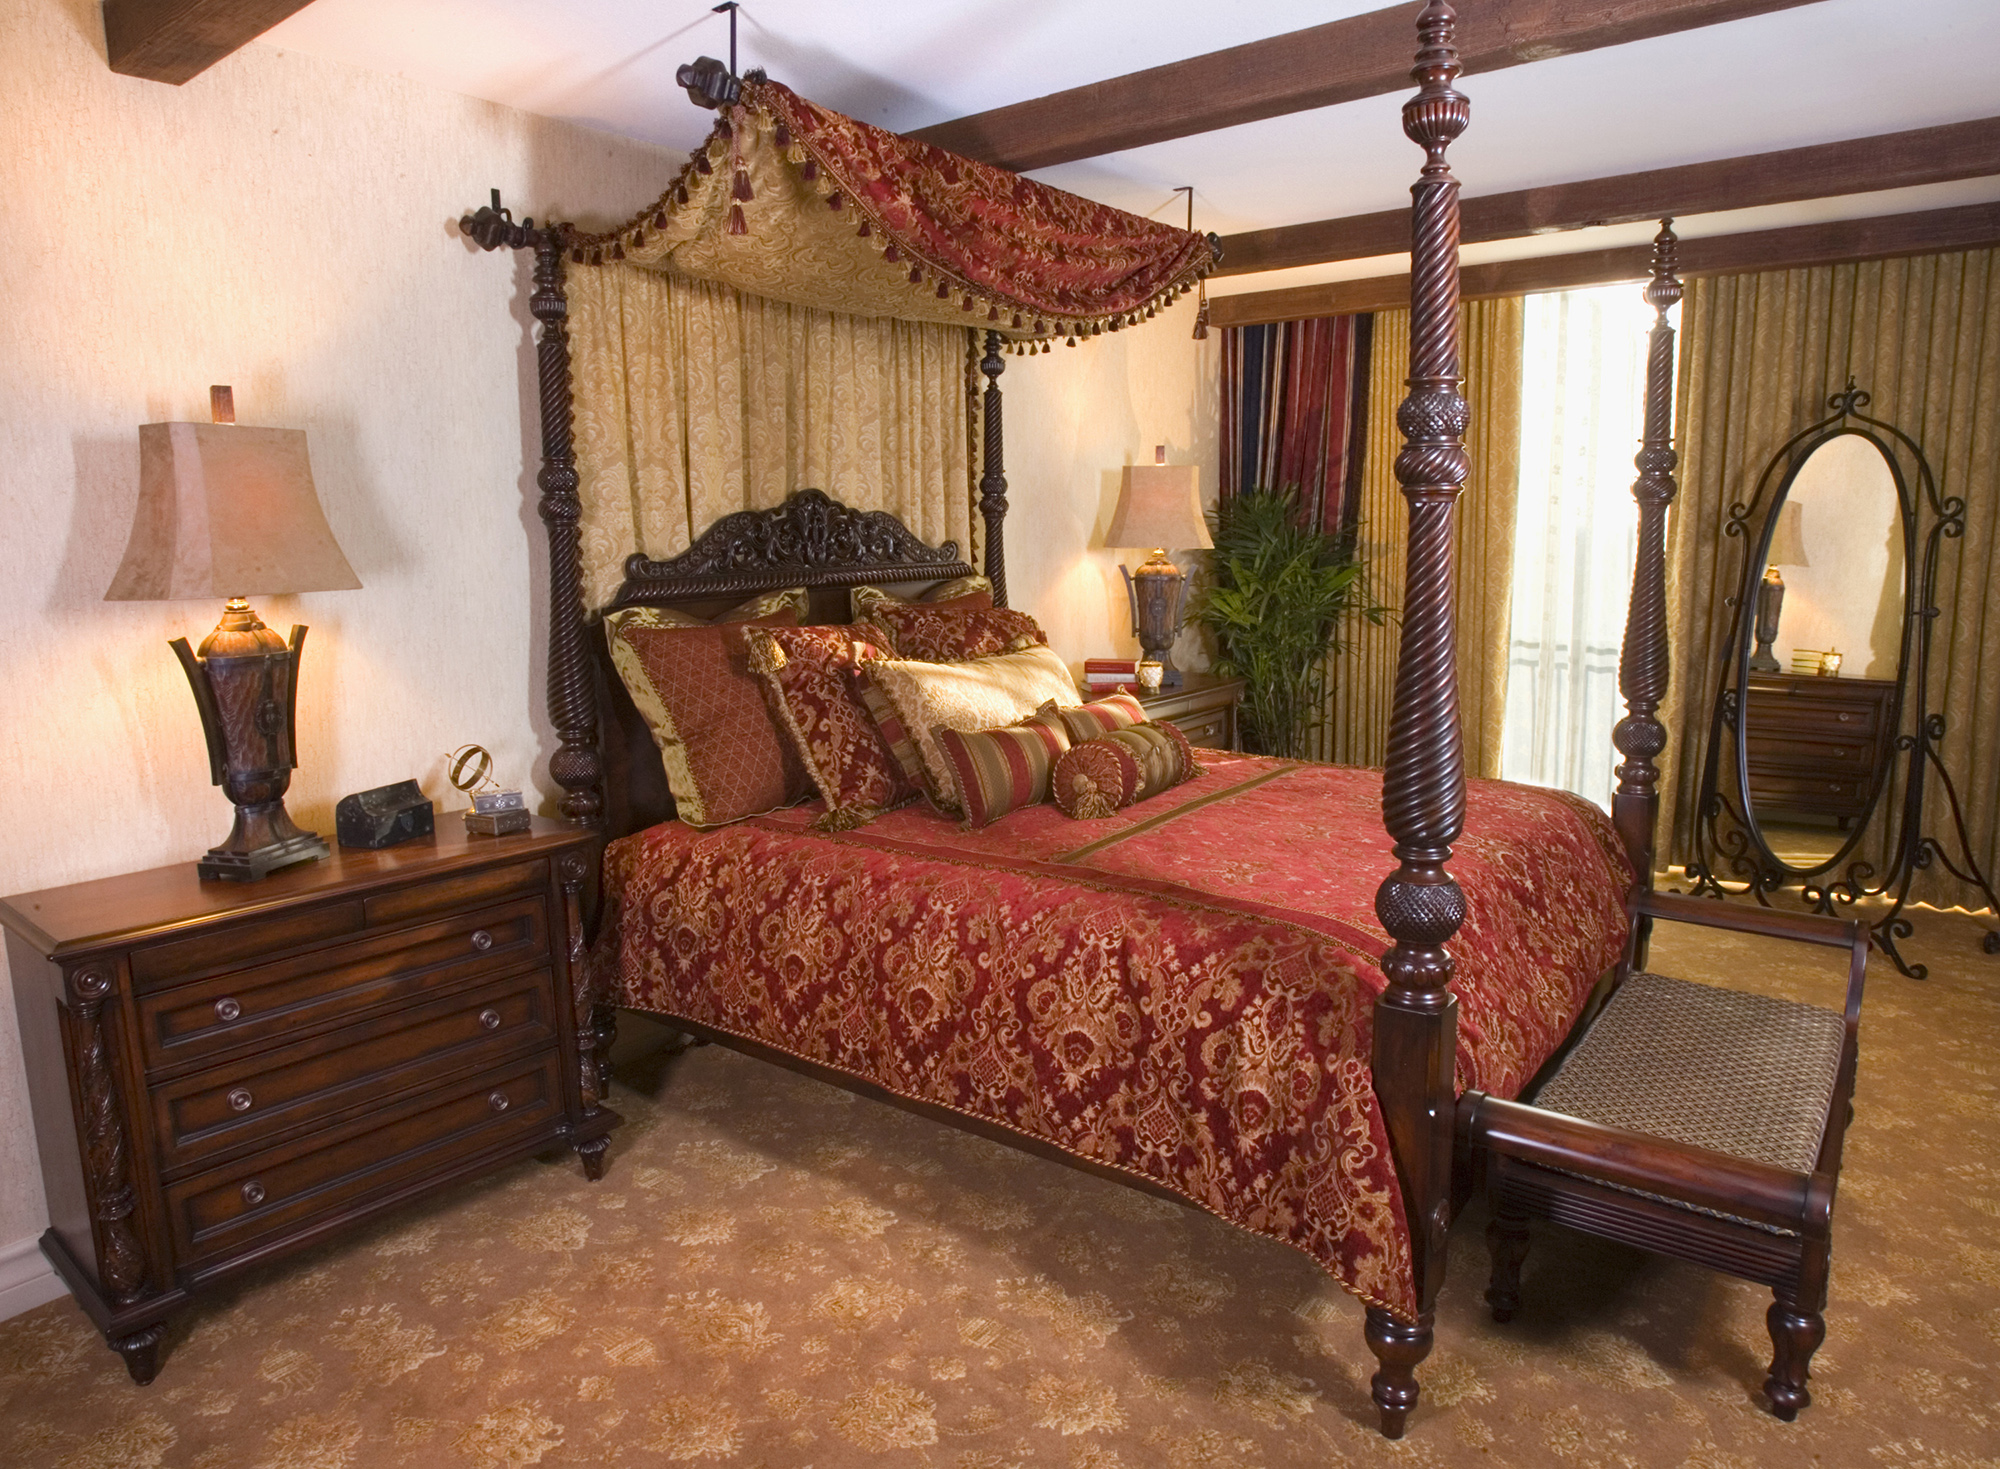 Your Inside Look At Disneyland 39 S Themed Suites For Super Fans Los Angeles Magazine